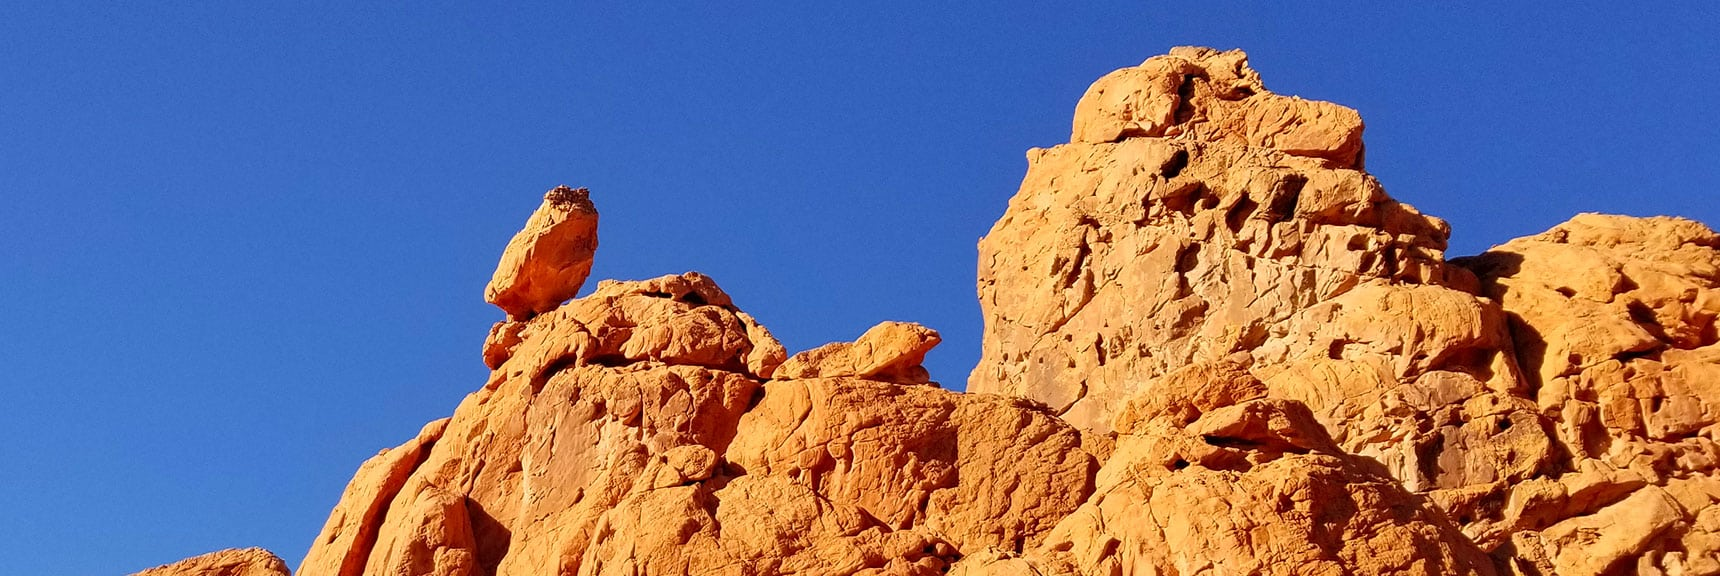 Balancing Rock on Unique Perspective of the Pinnacles from Above Pinnacles Loop Trail in Valley of Fire State Park, Nevada